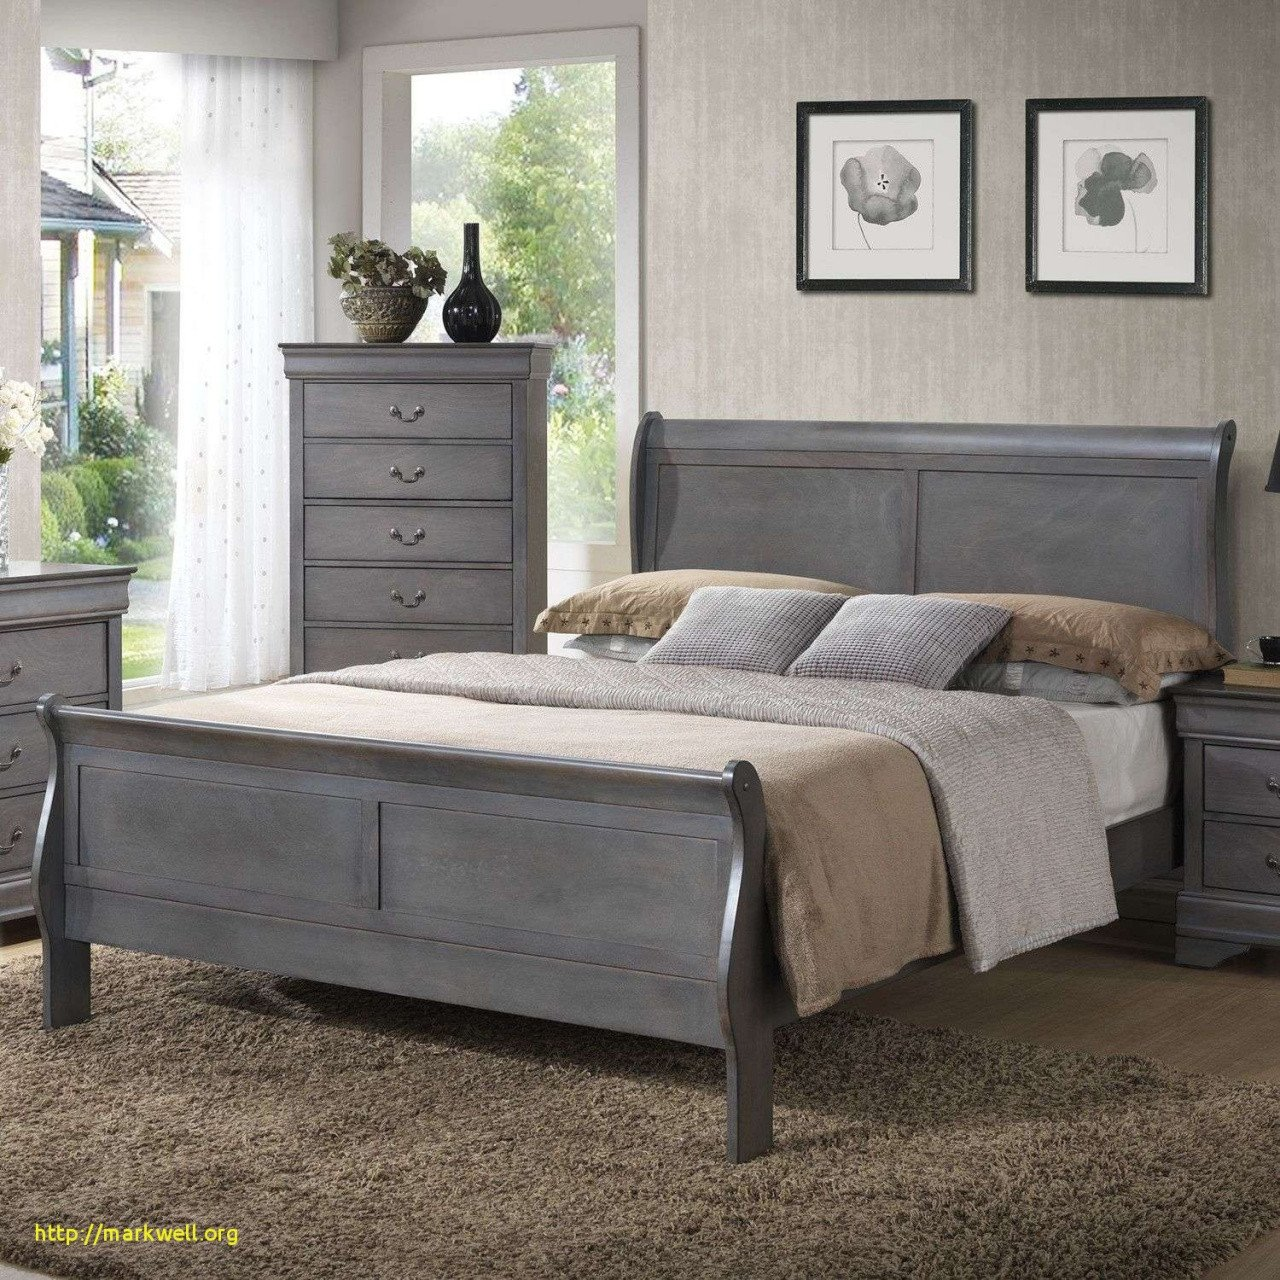 Gold Black and White Bedroom New Grey and Gold Bedroom Ideas – Bunk Bed Ideas